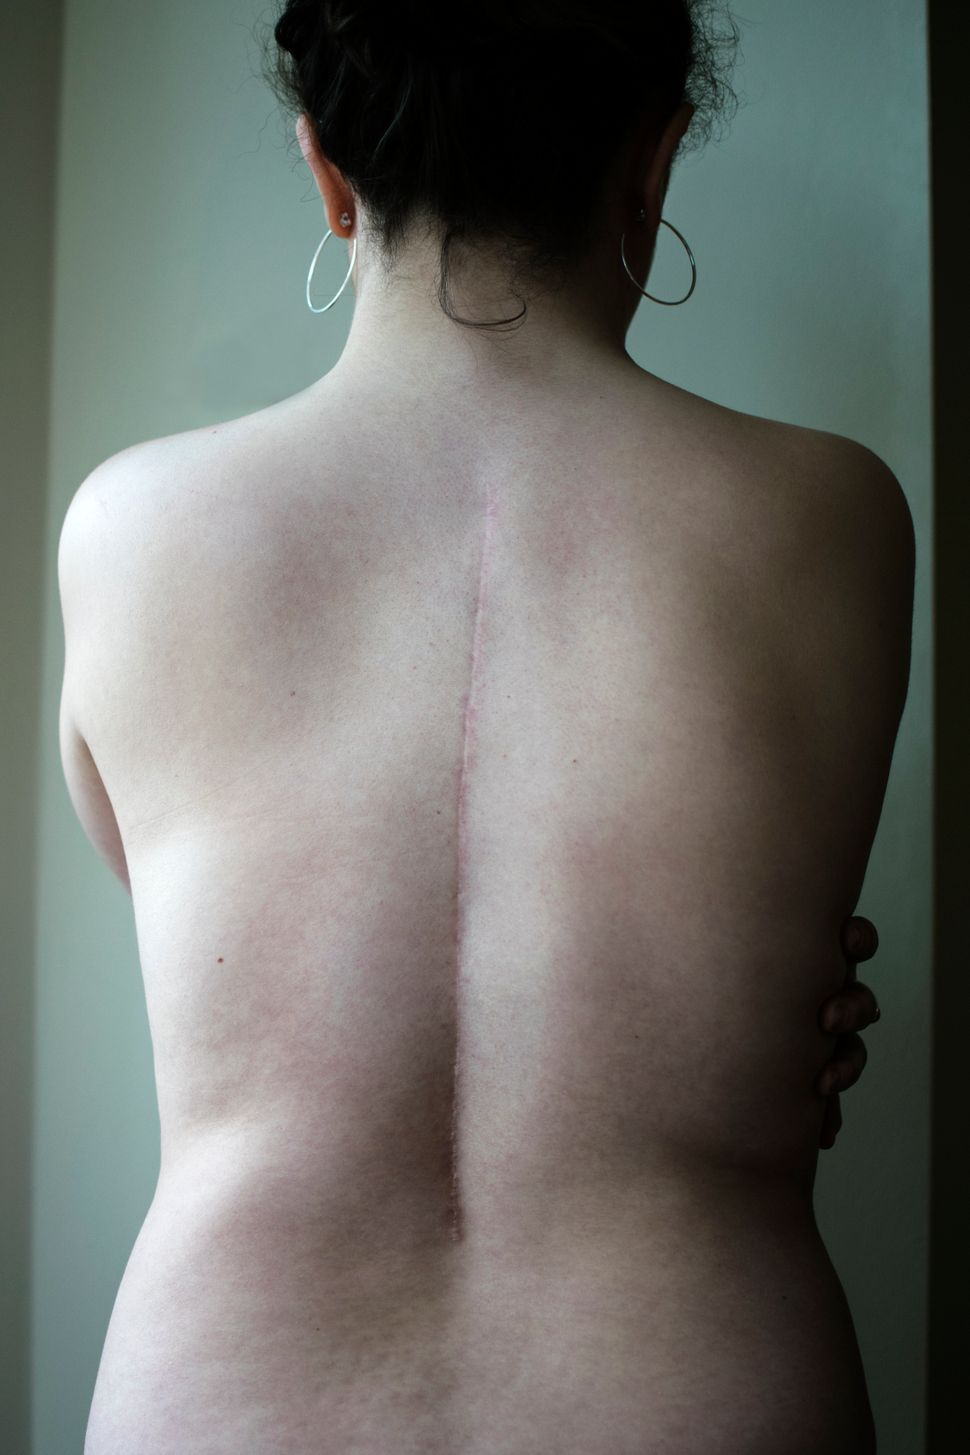 Floss, spinal fusion. February 14, 2011